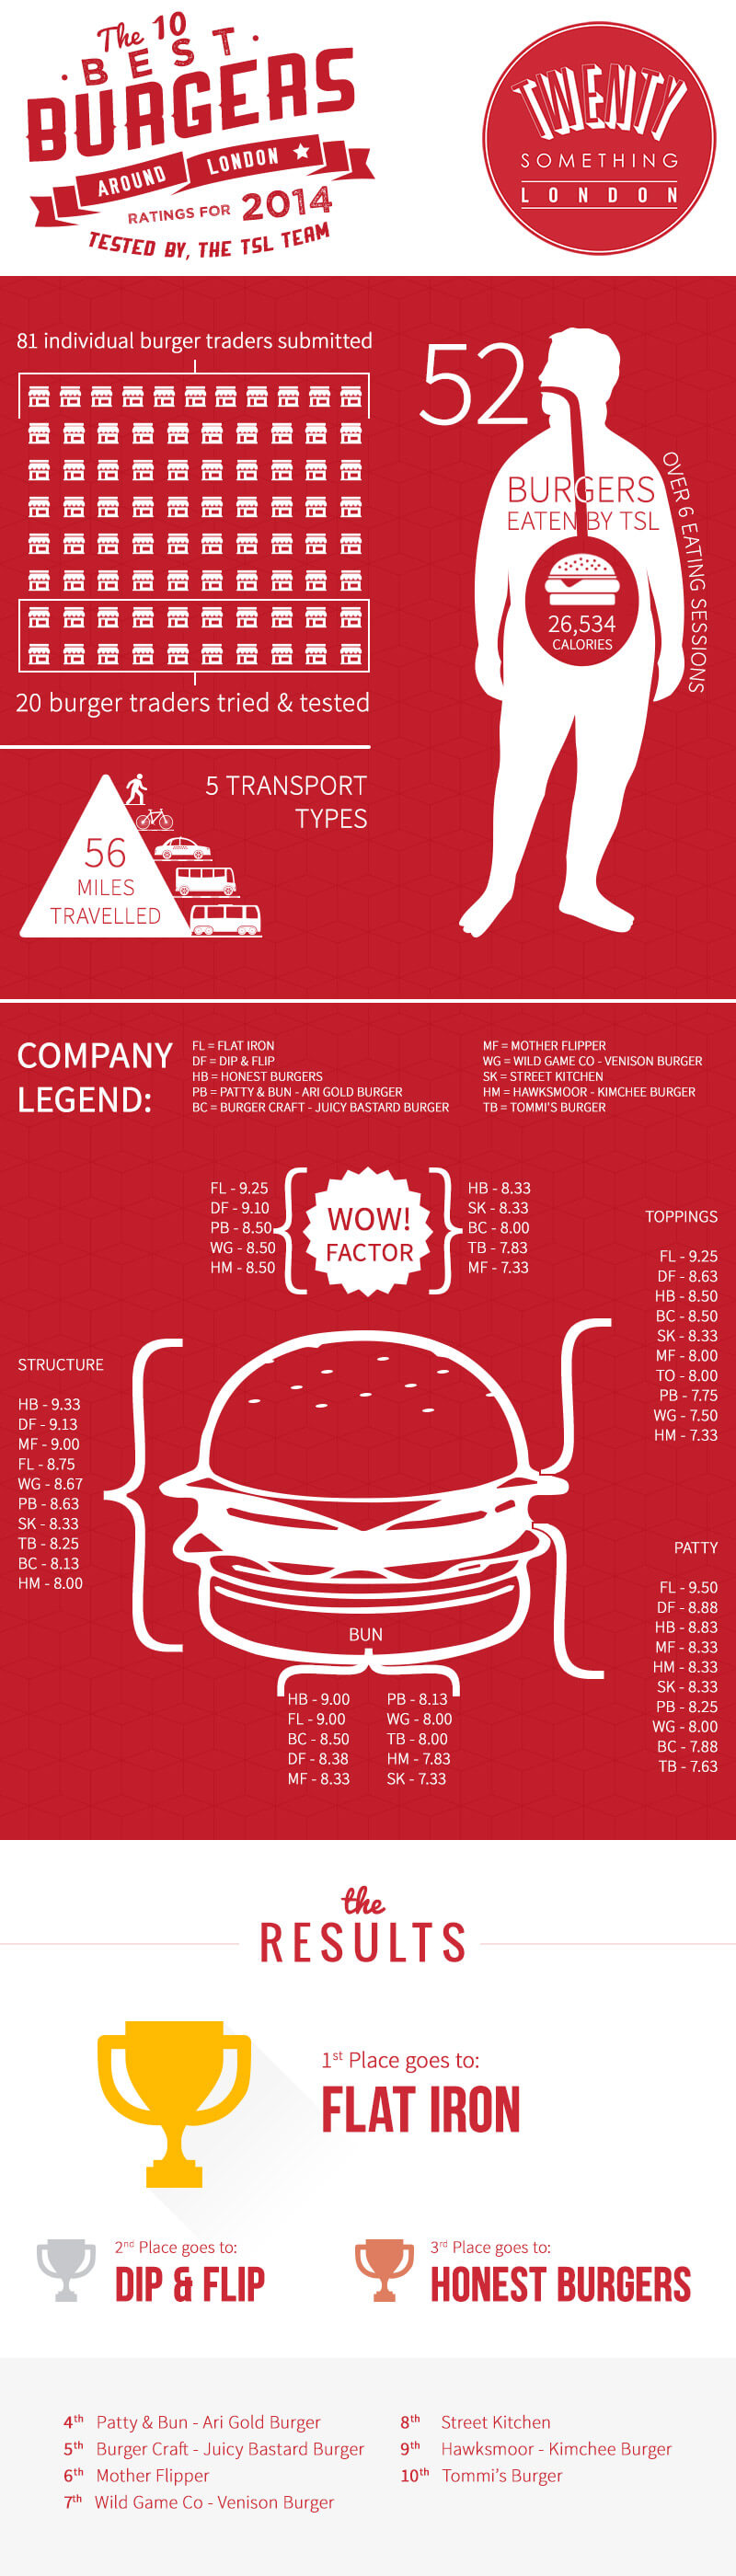 TSL's Infographic for London's Top 10 Burgers